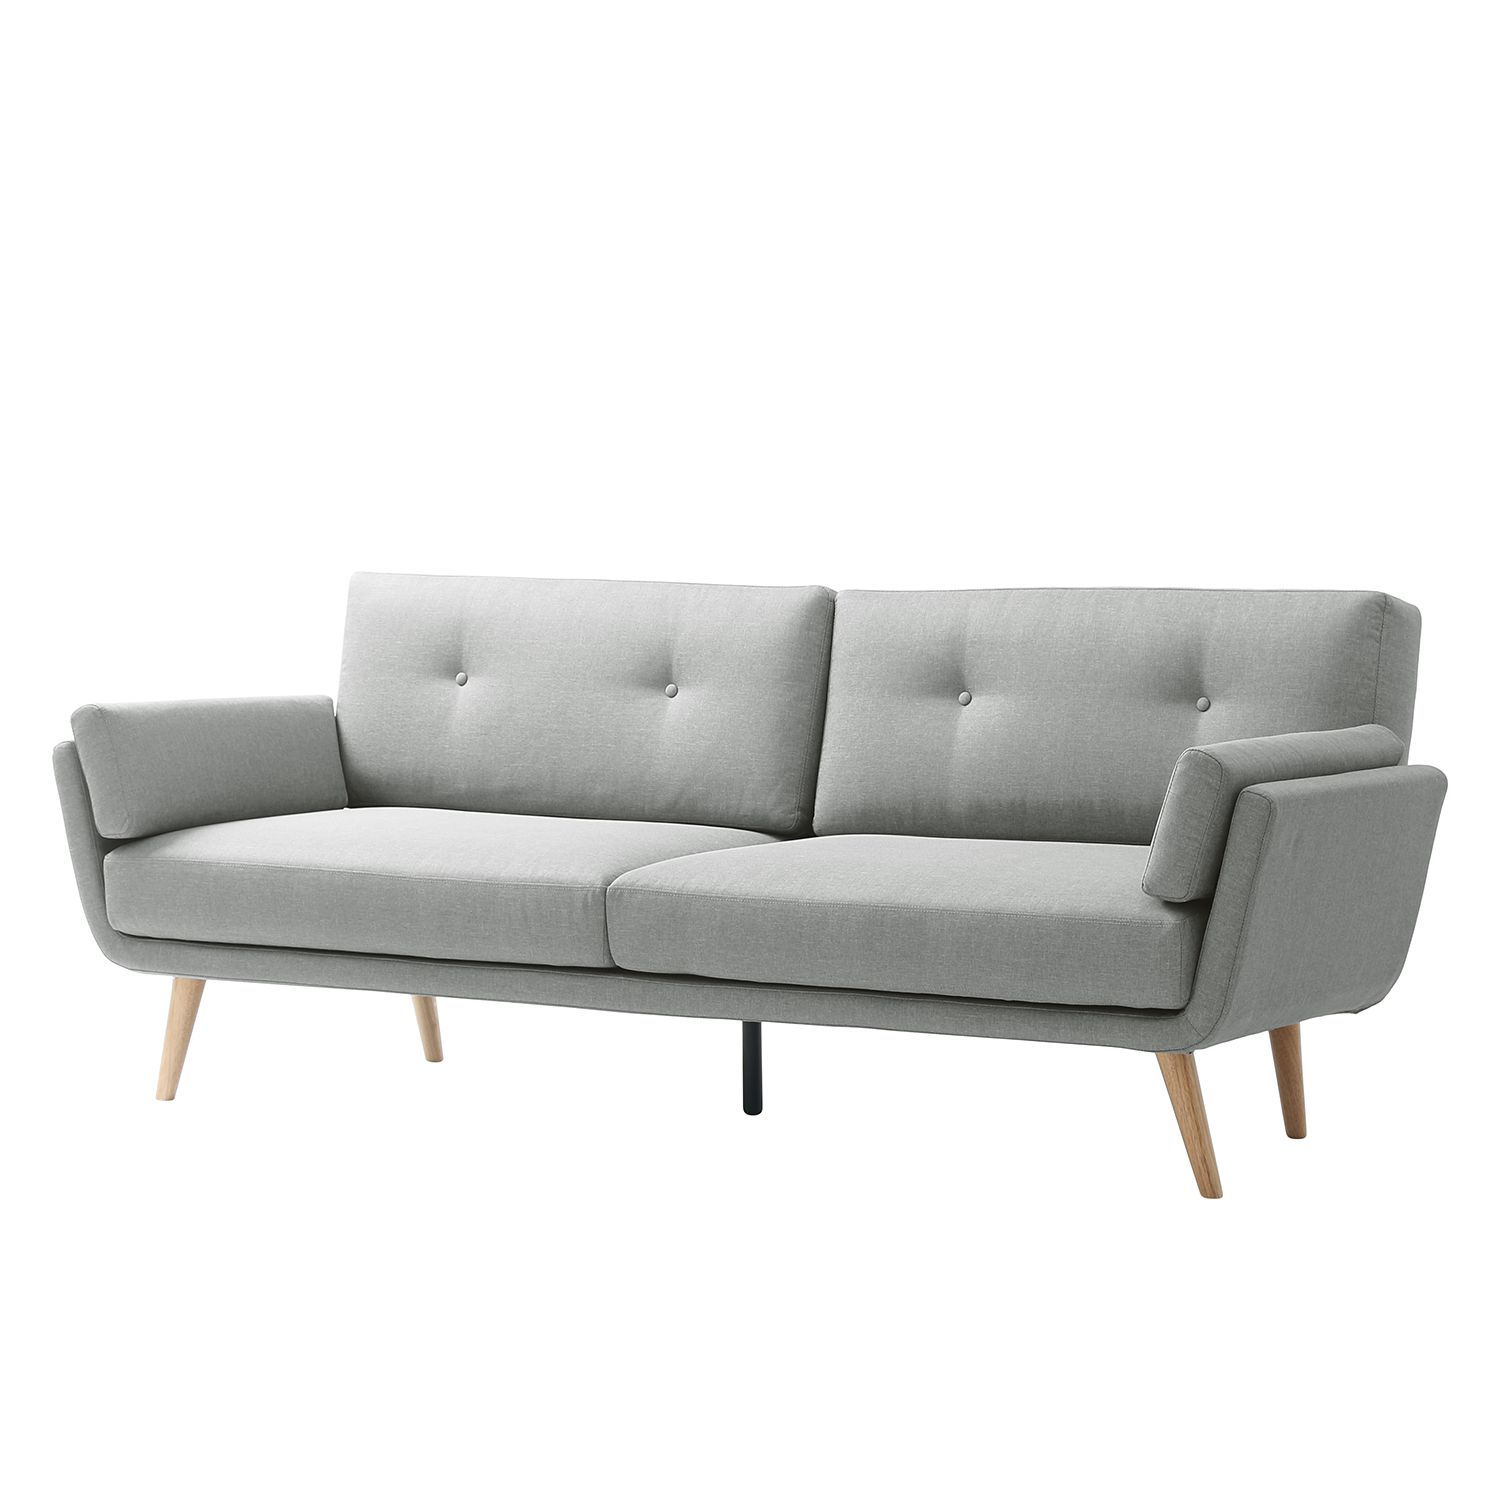 sofa bestellen fabulous sofa heim von sitzfeldt designer sebastian herkner mbel gnstig online. Black Bedroom Furniture Sets. Home Design Ideas